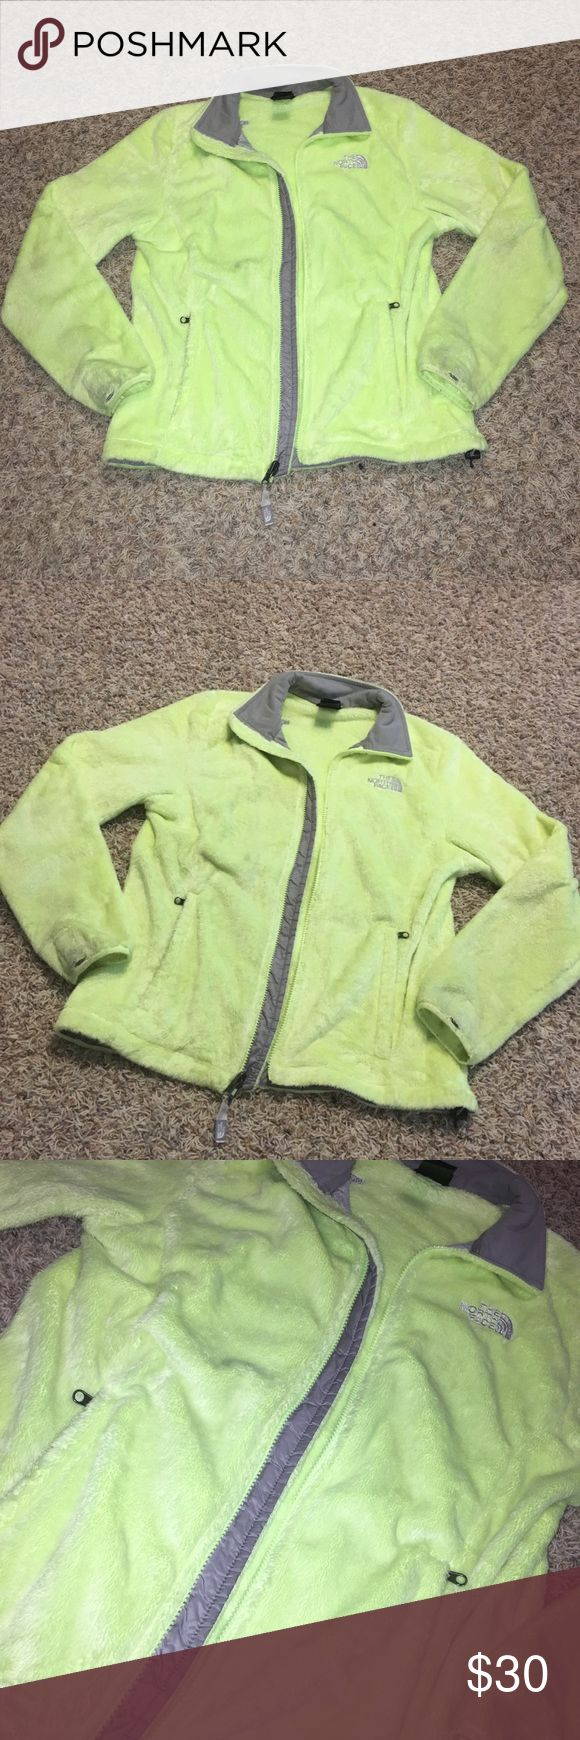 North Face Jacket Neon yellow north face jacket, so soft and in great condition, size medium, only sign of wear is at wrists. The North Face Jackets & Coats